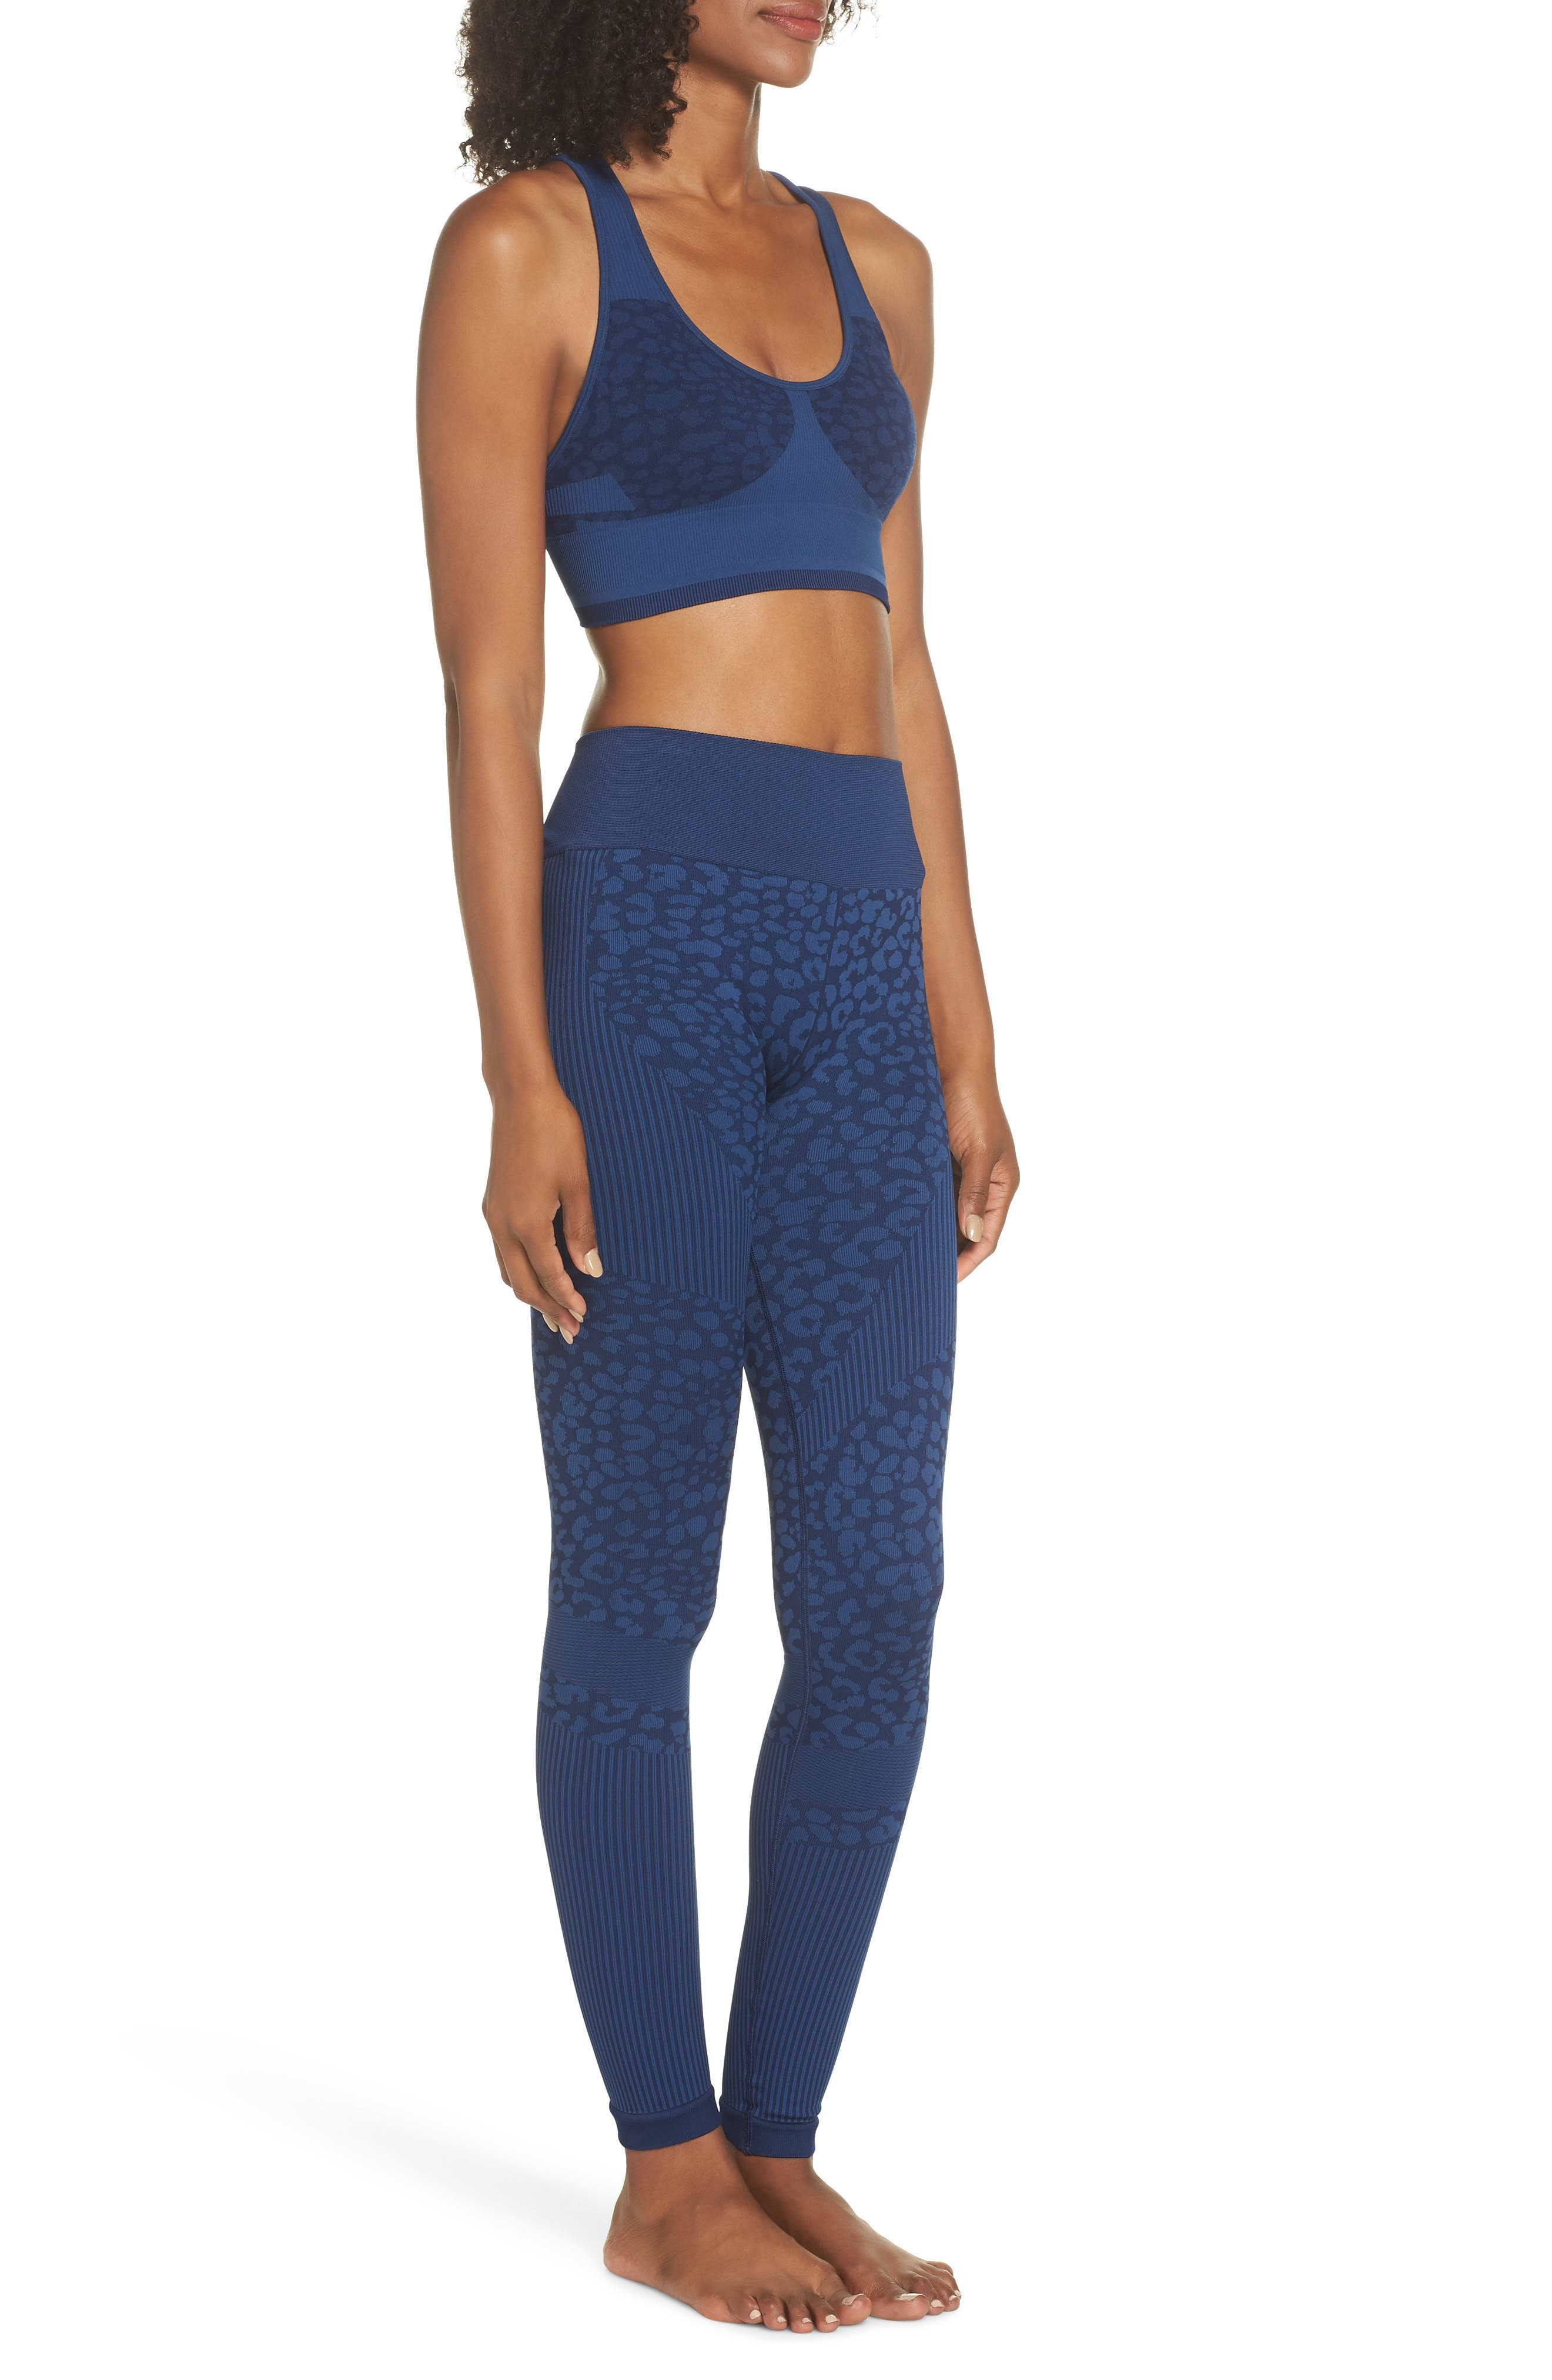 Quincy Seamless Leggings,                             Alternate thumbnail 10, color,                             NAVY LEOPARD